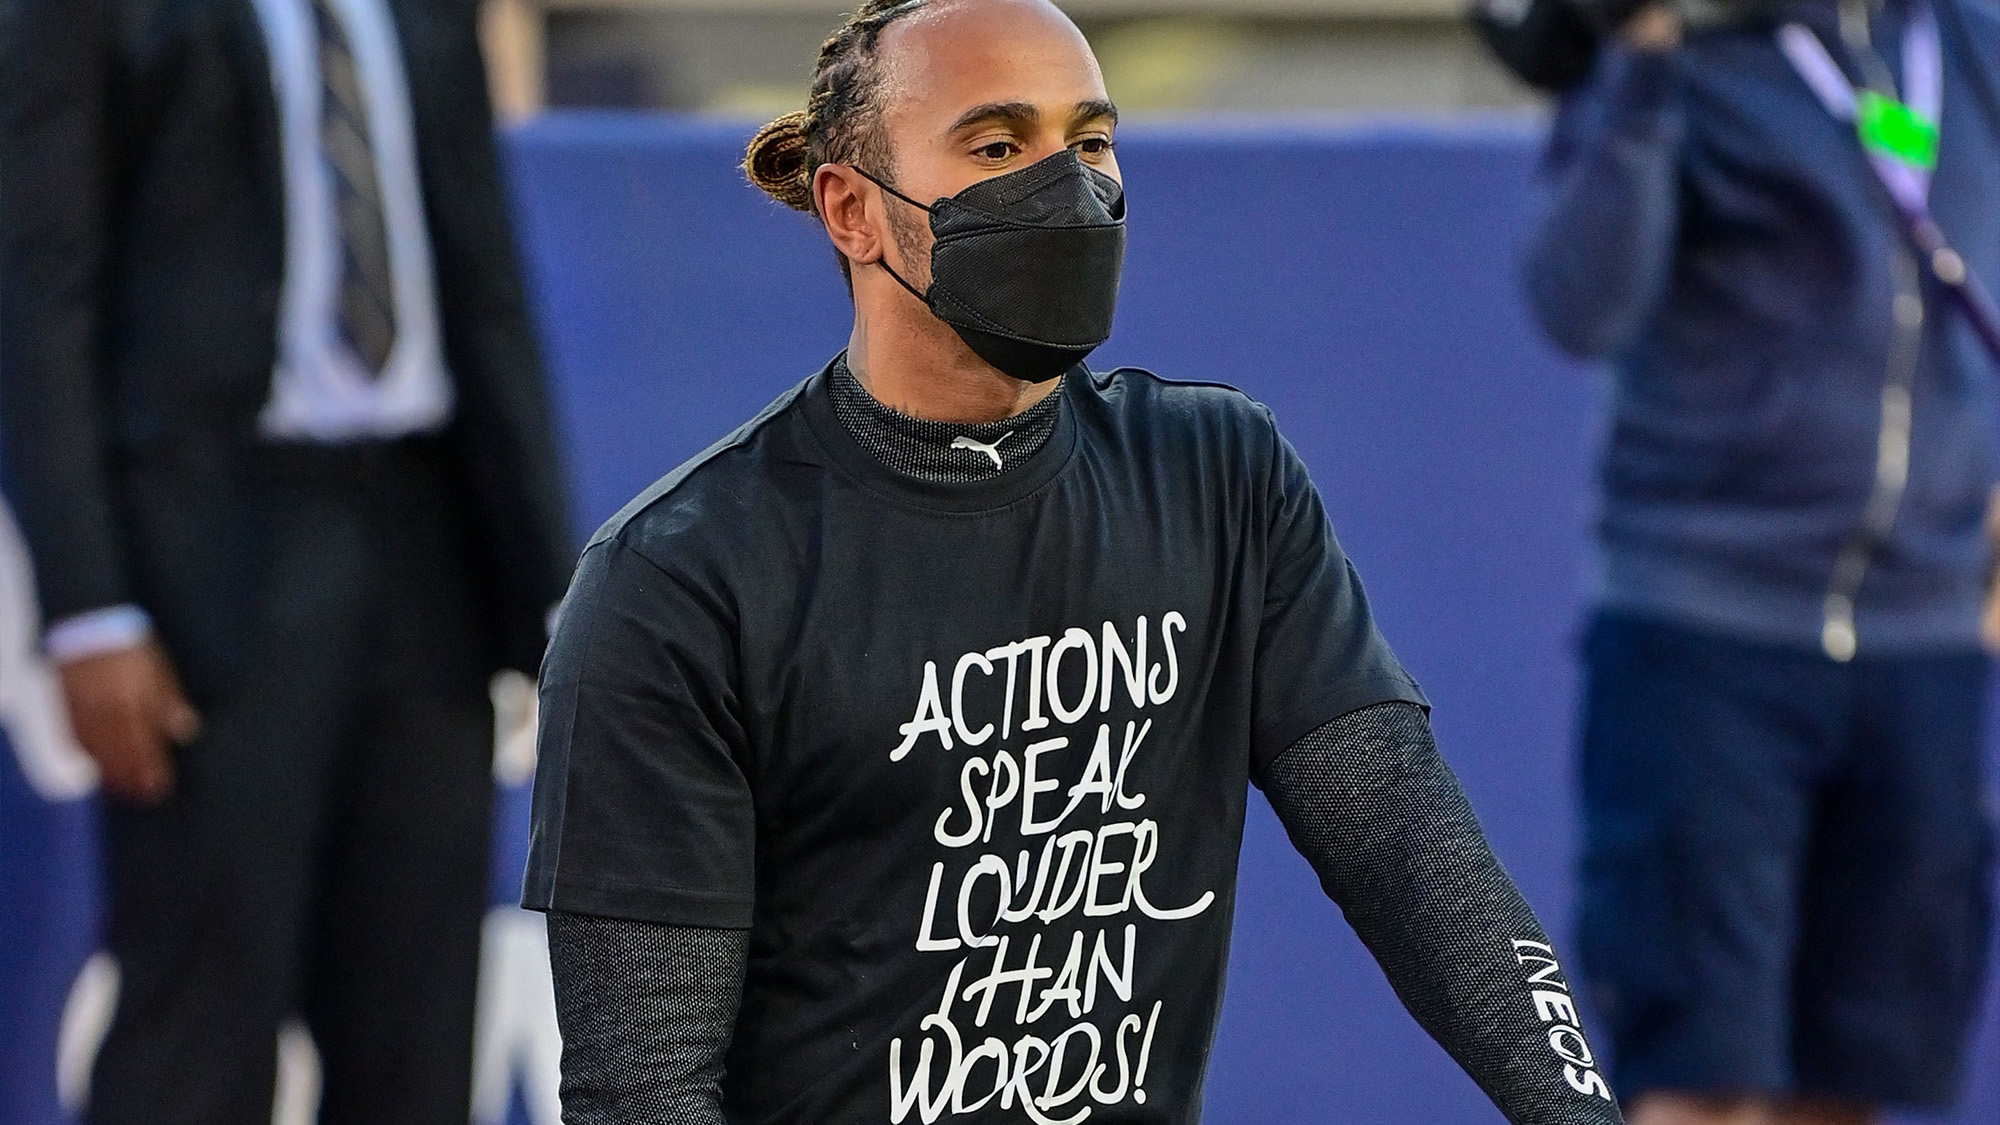 Lewis Hamilton with actions speak louder than words t-shirt